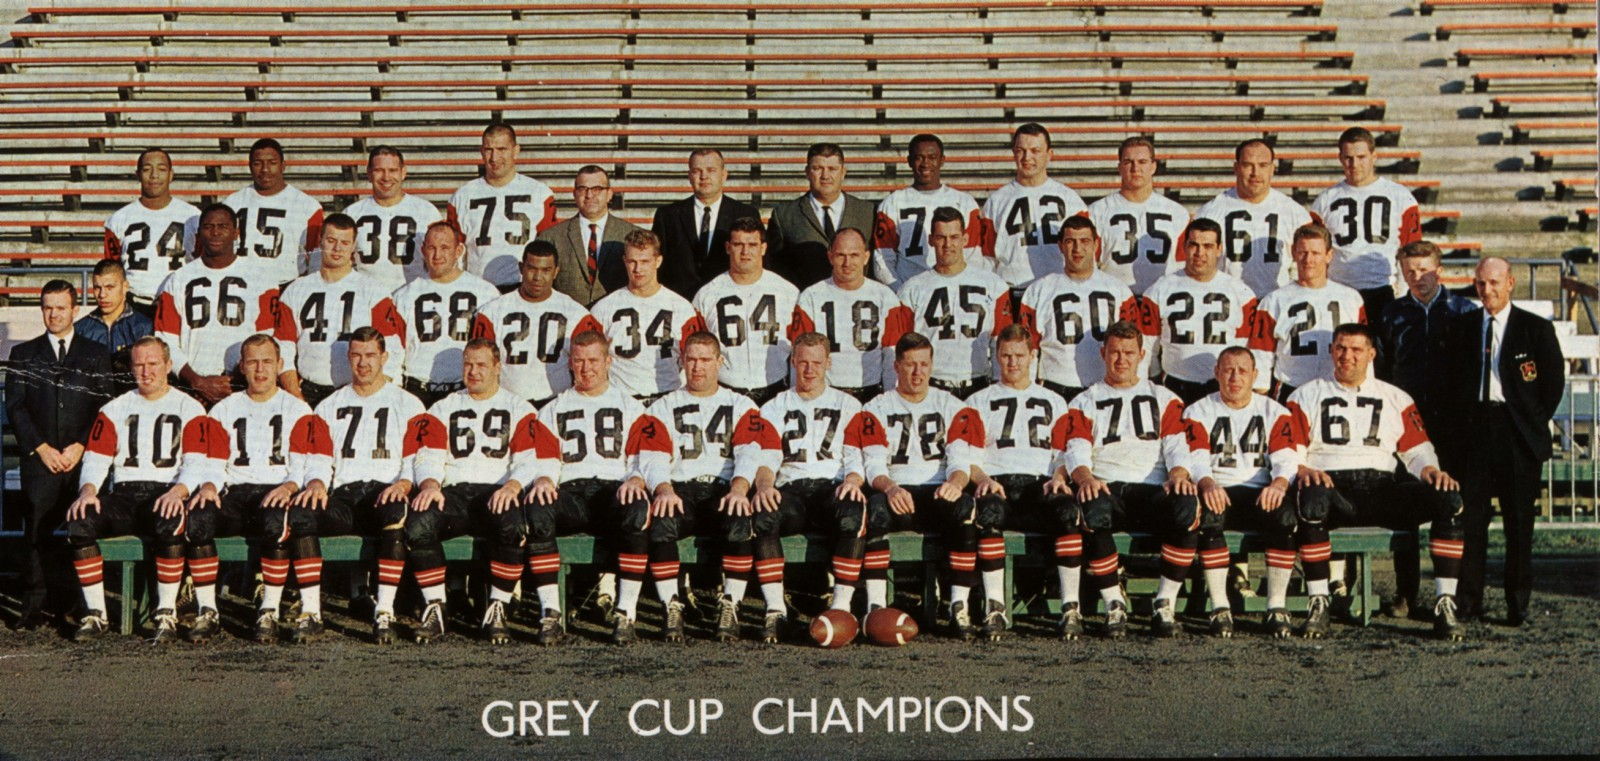 Their First Grey Cup: The BC Lions